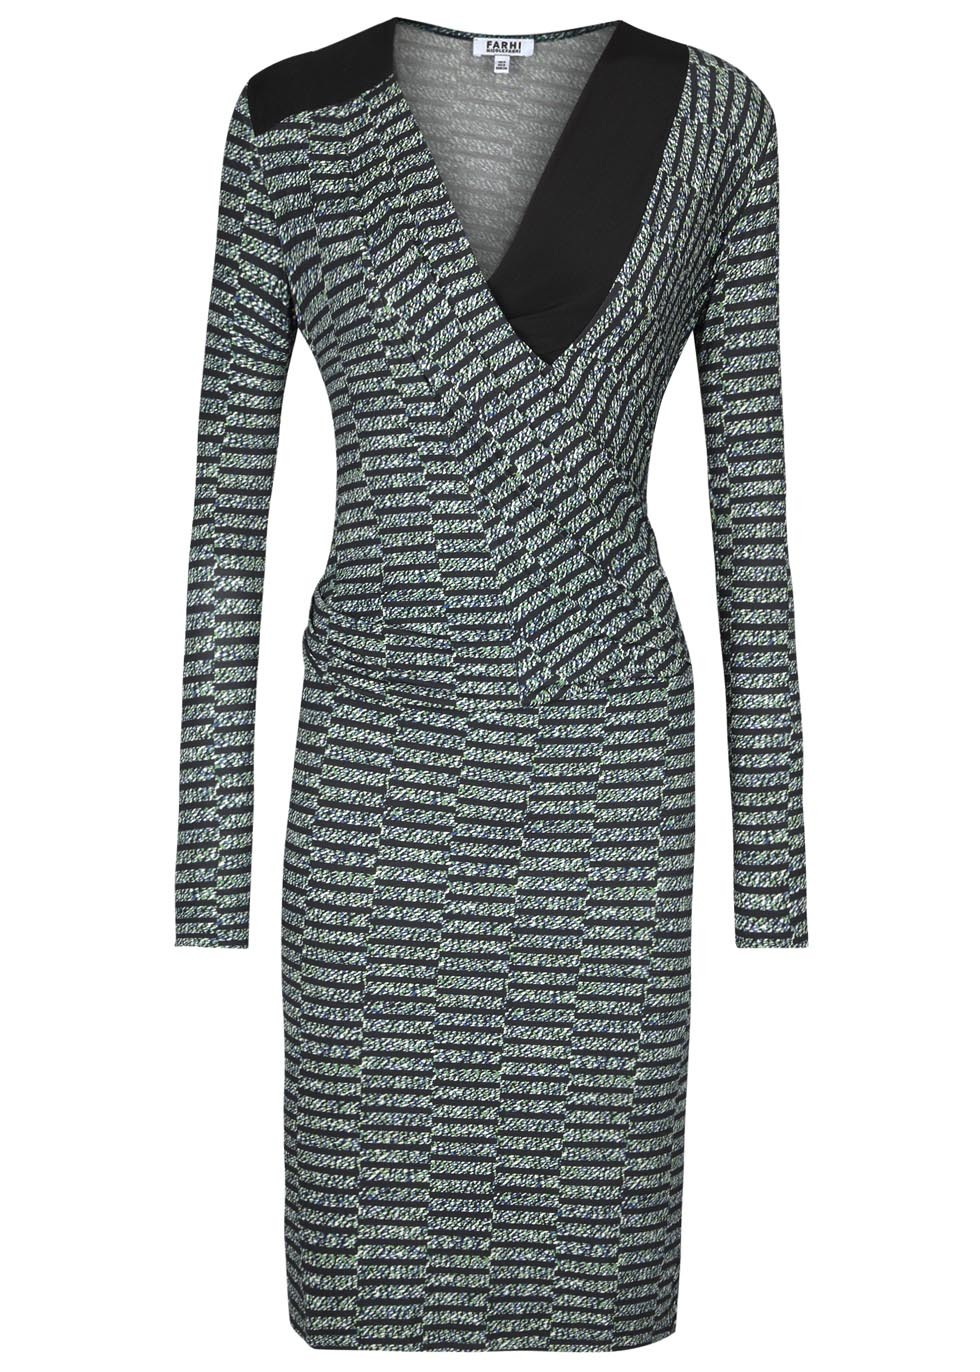 Printed Jersey Dress - style: faux wrap/wrap; length: below the knee; neckline: low v-neck; predominant colour: mid grey; occasions: evening, occasion; fit: body skimming; fibres: viscose/rayon - stretch; sleeve length: long sleeve; sleeve style: standard; pattern type: fabric; pattern size: standard; pattern: patterned/print; texture group: jersey - stretchy/drapey; season: a/w 2014; wardrobe: event